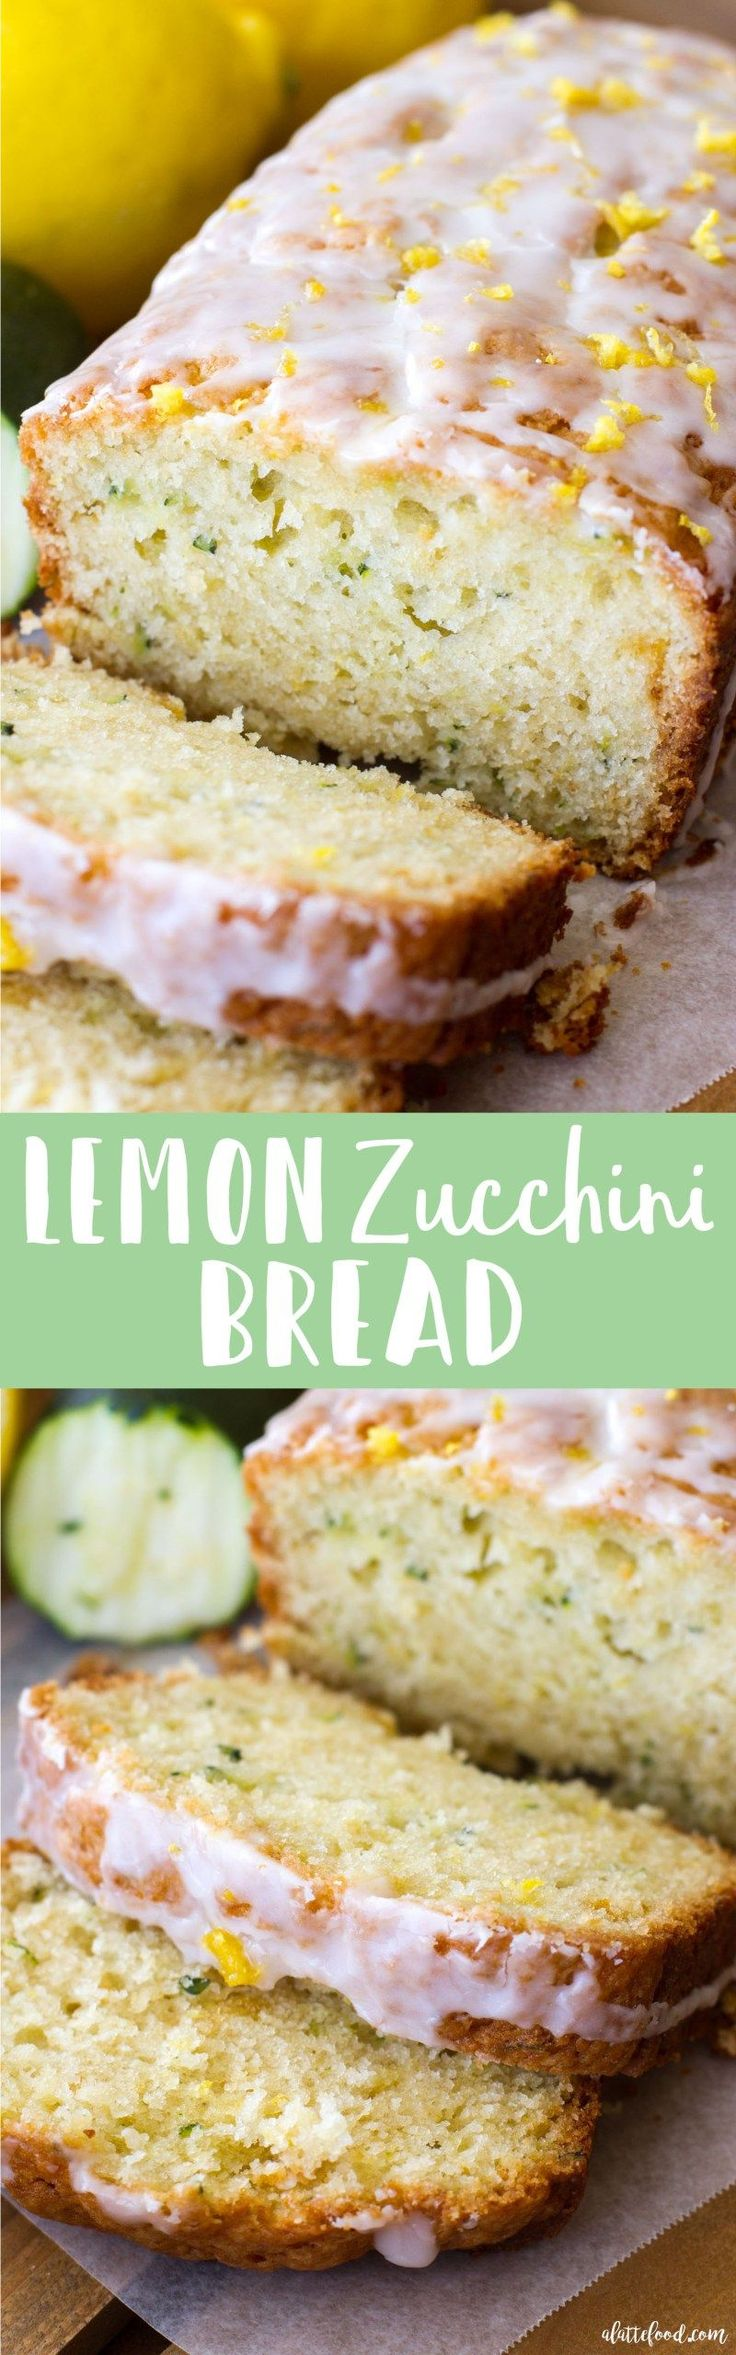 This easy zucchini bread recipe has a lemon bread twist to it, making it the perfect quick bread for spring and summer! Seriously, lemon zucchini bread is going to be your newest summer dessert obsession!